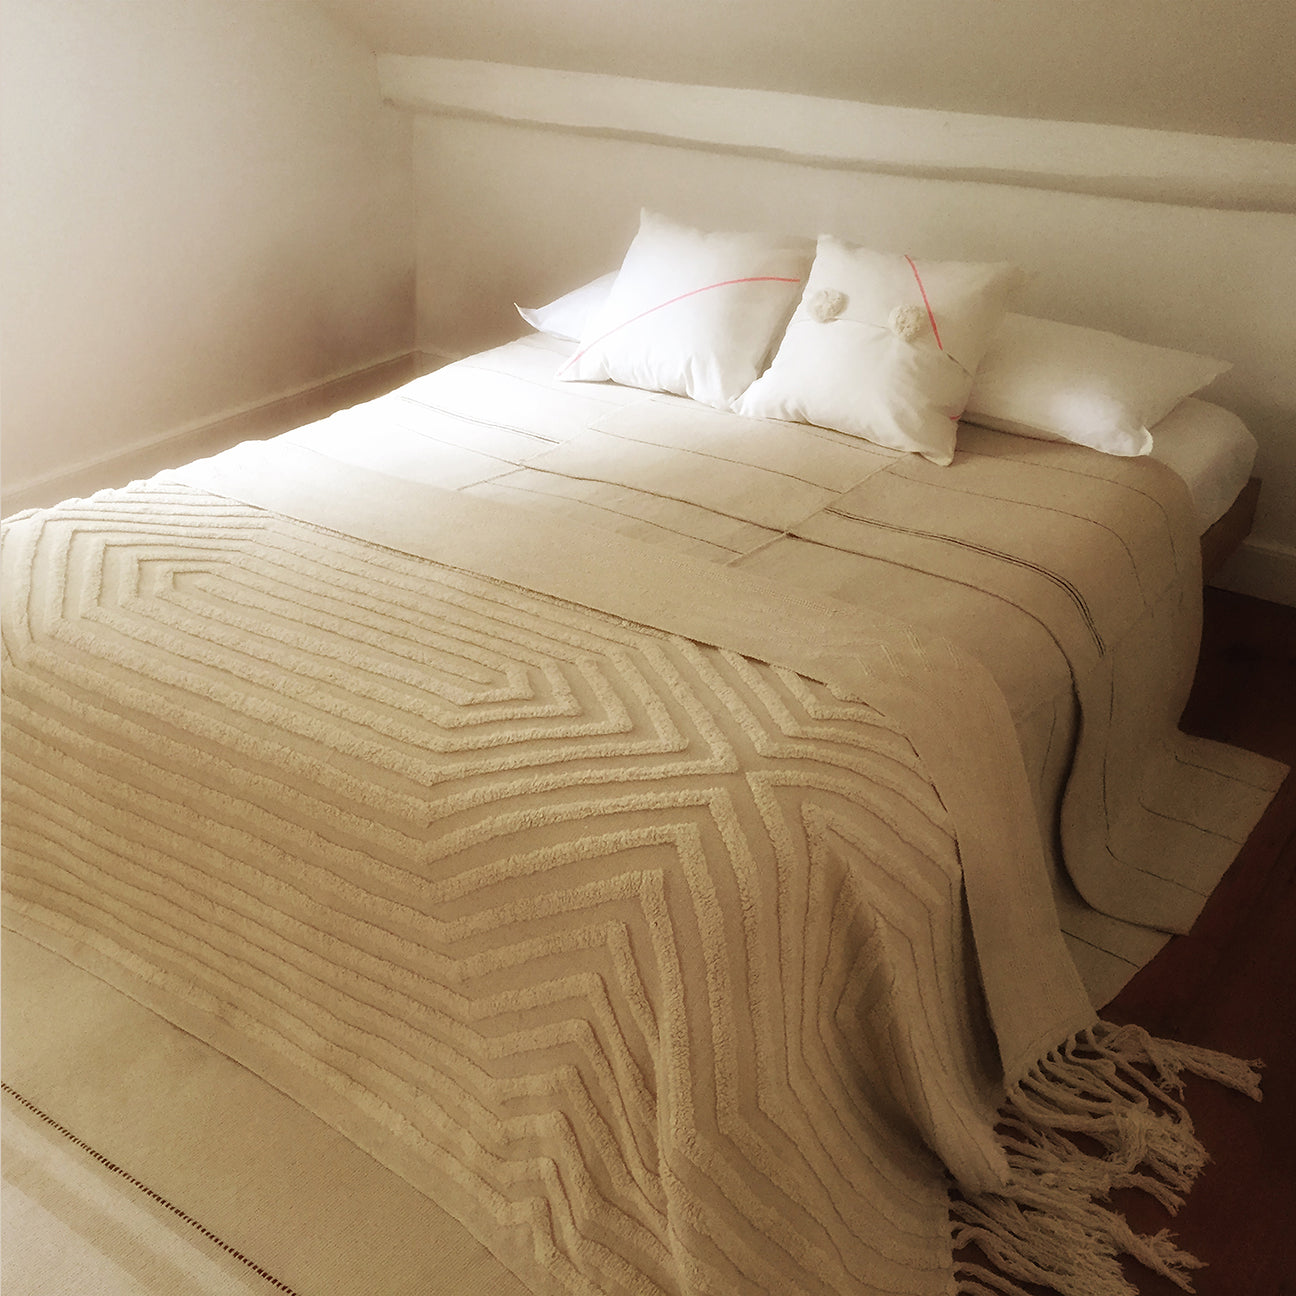 M+A NYC Stella Handloomed and Tufted Cotton Oversize Throw